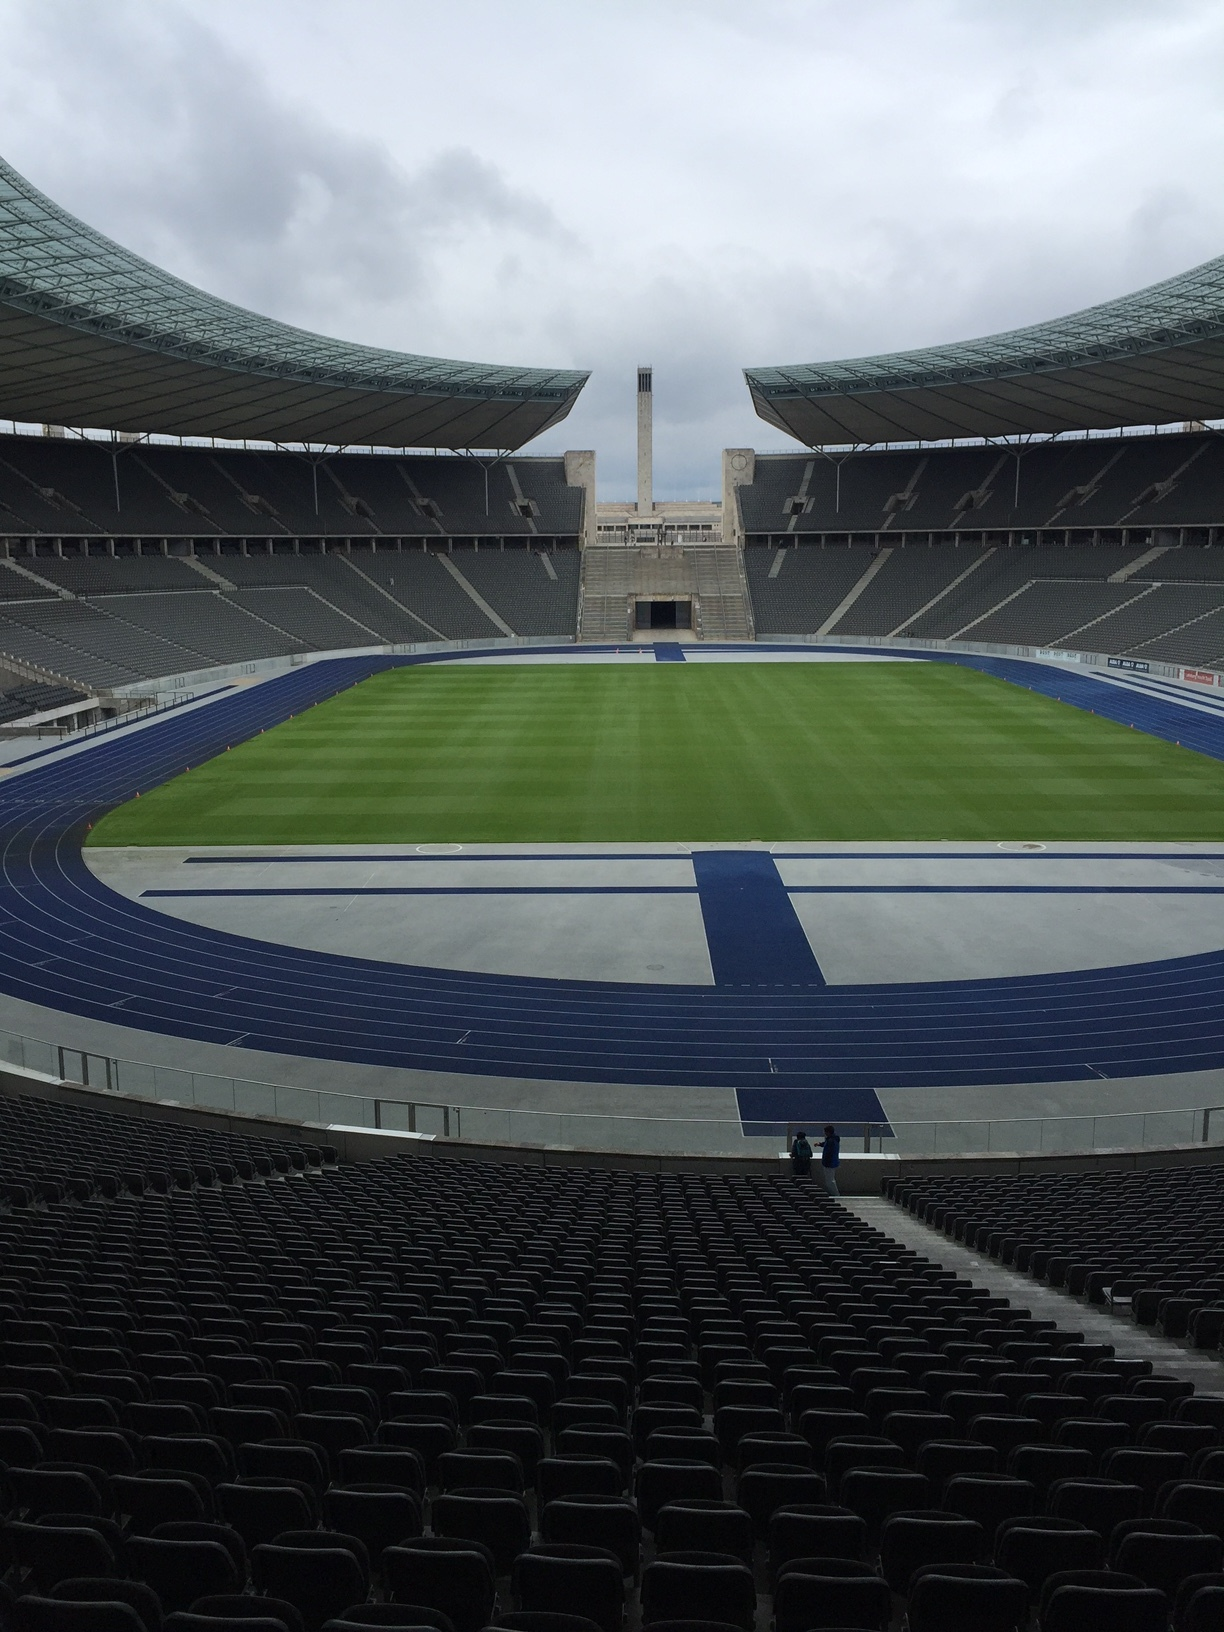 This is as close as I came to the Blue track in the beautiful Olympiastadion where Usain Bolt broke the World Records in the 100m and 200m in 2009.